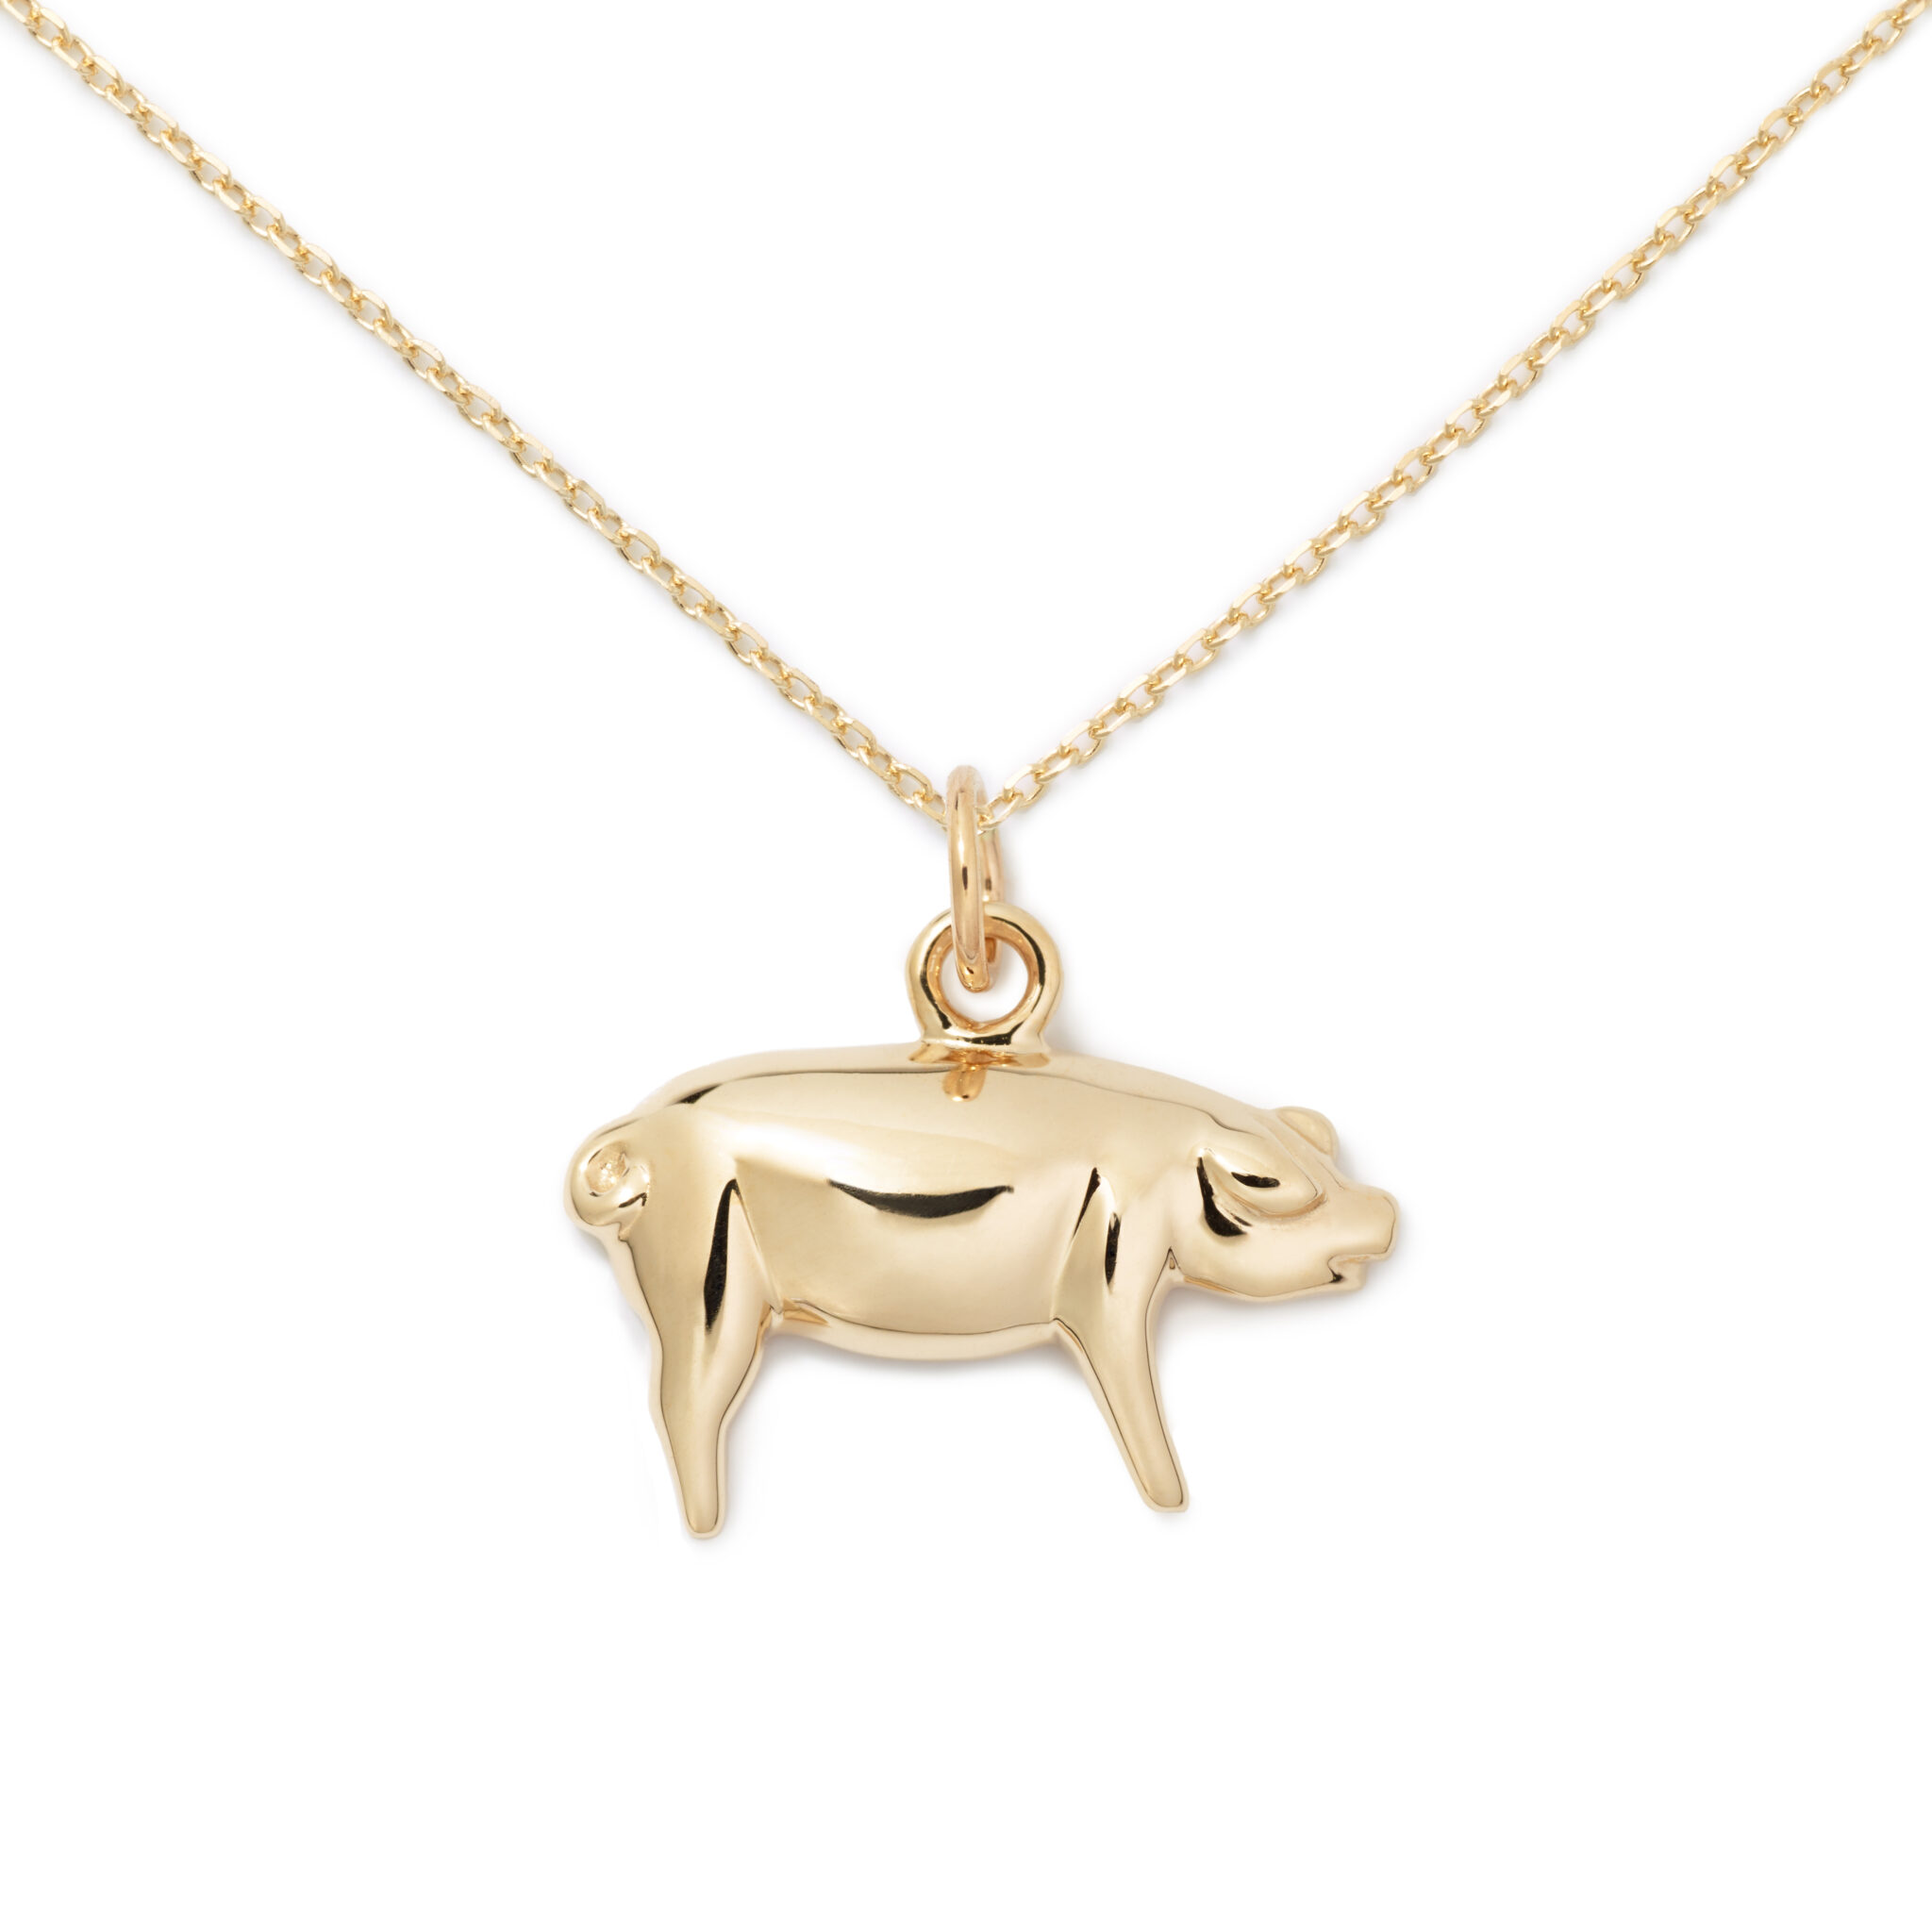 Pig Pendant, 14K Yellow Gold